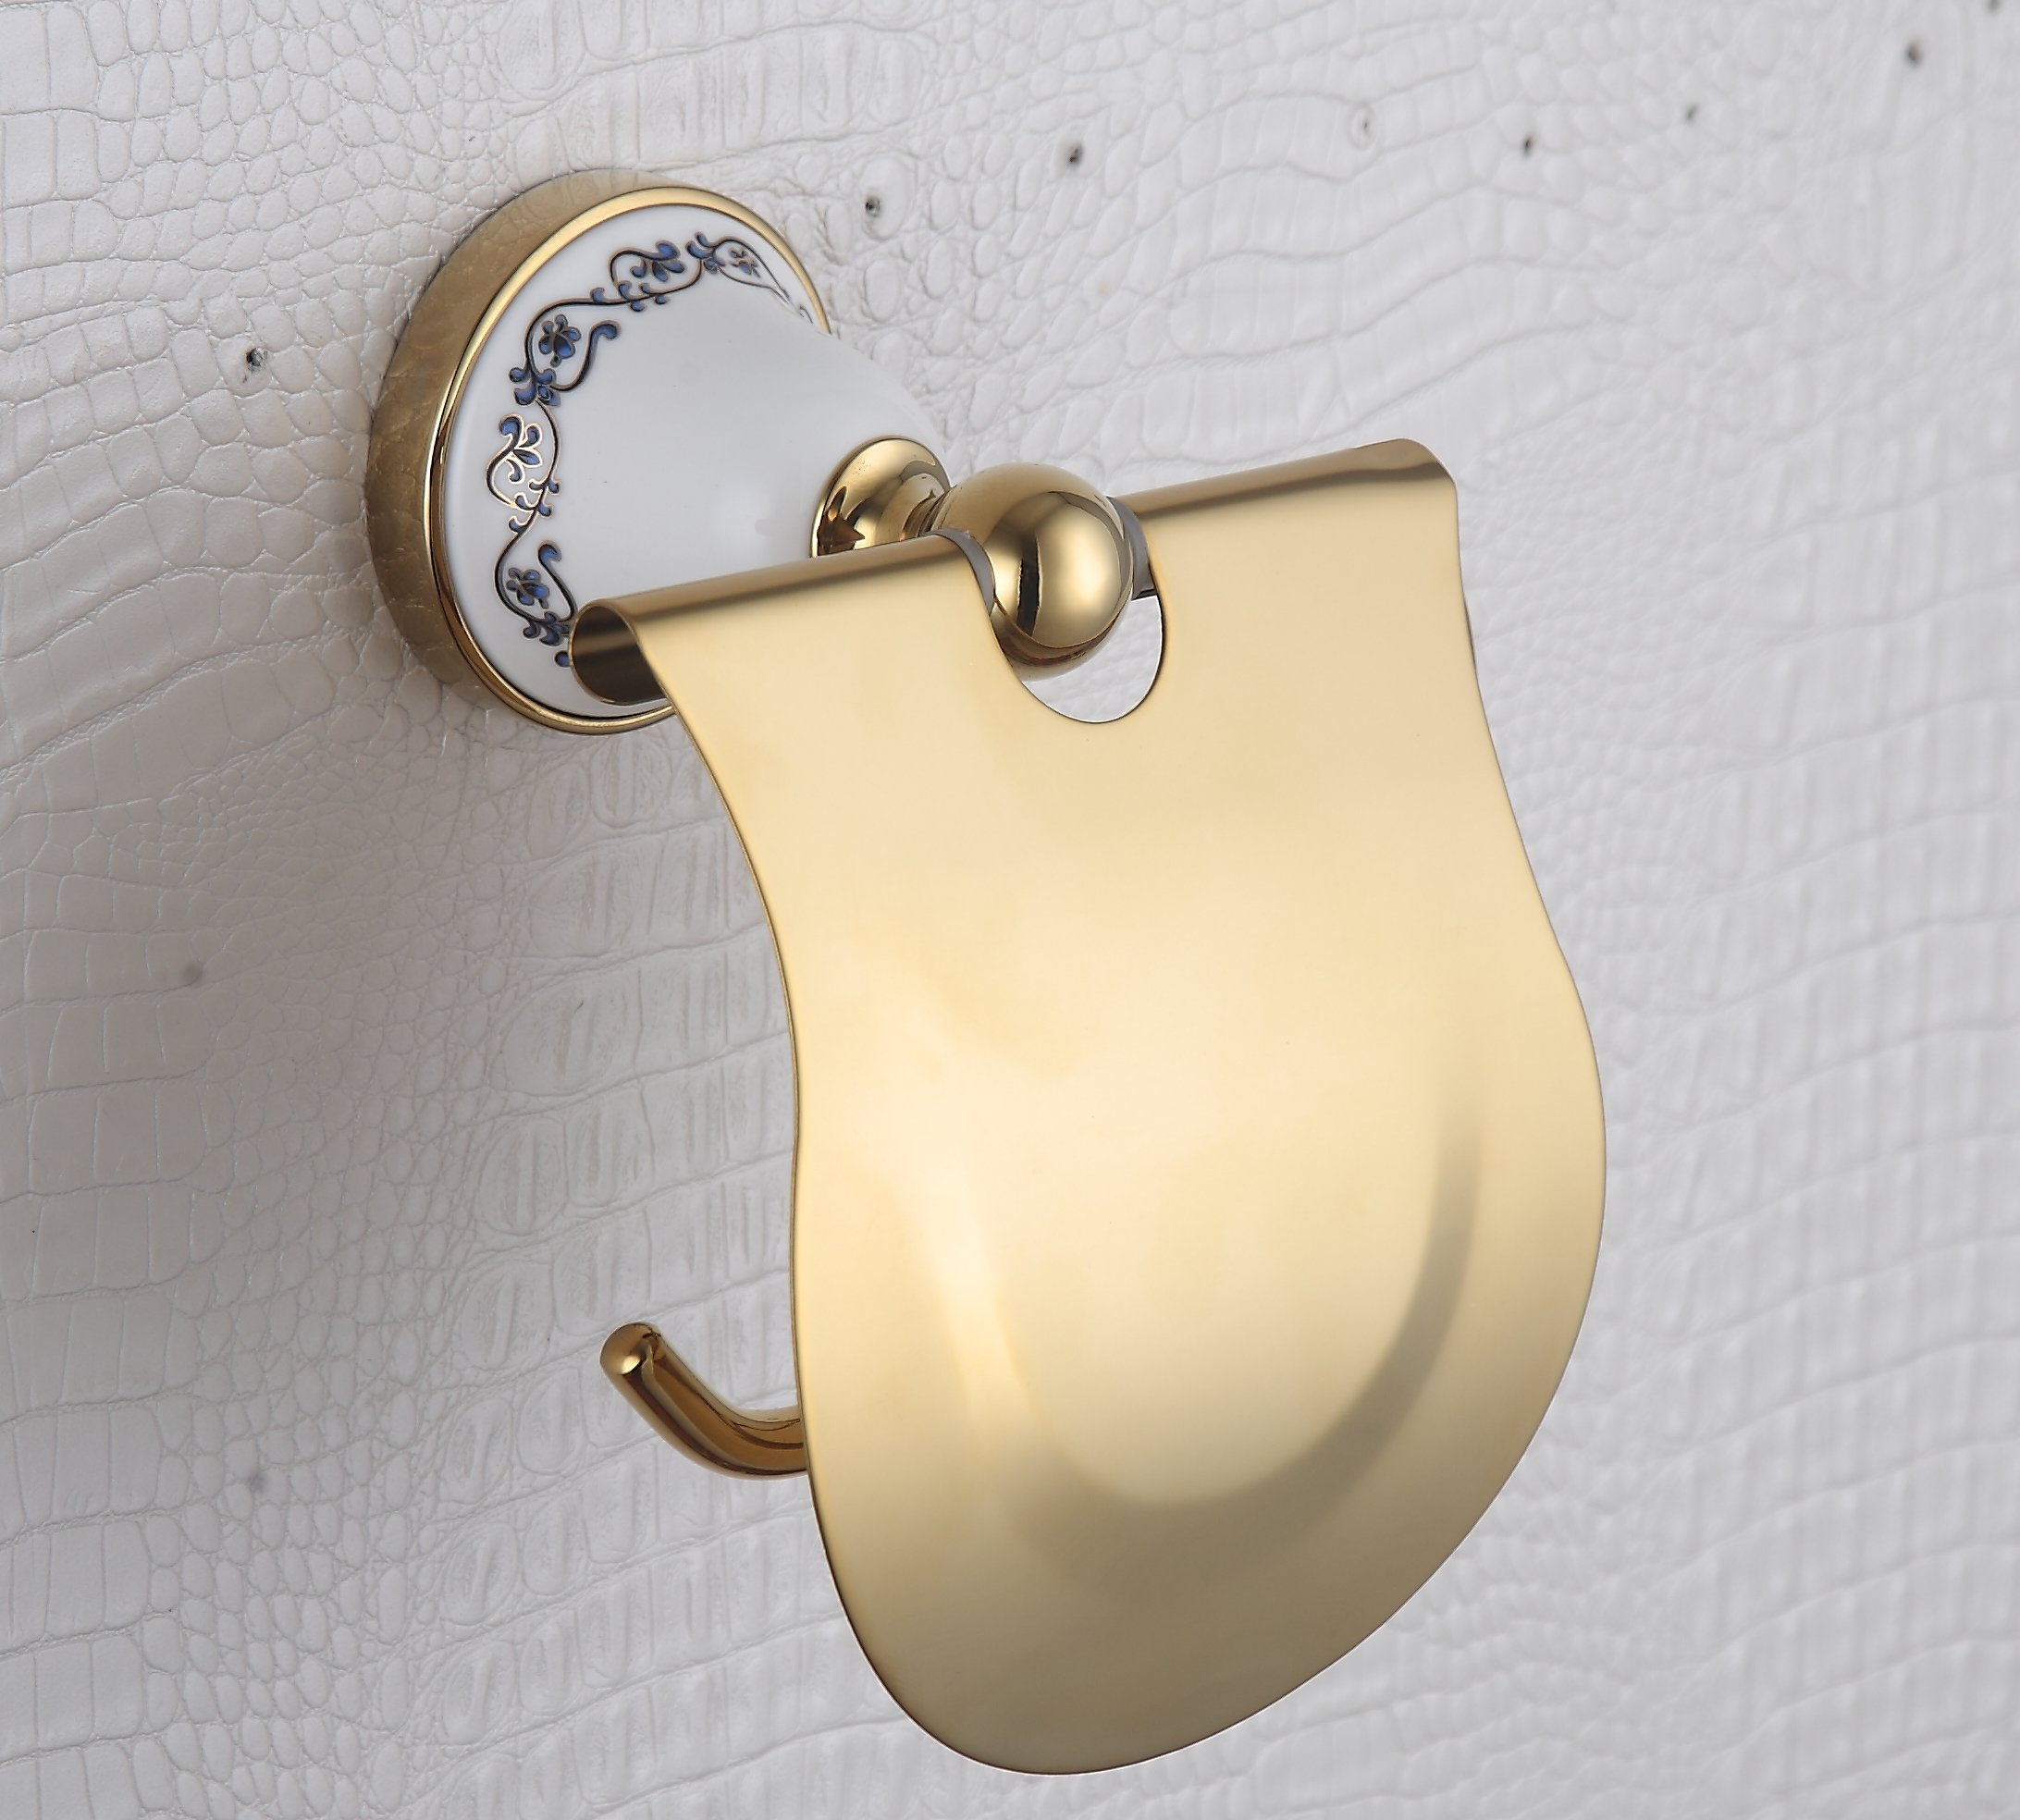 Cloud Power Porcelain Decorated Brass Toilet Paper Holders With Titanium Wall-mounted